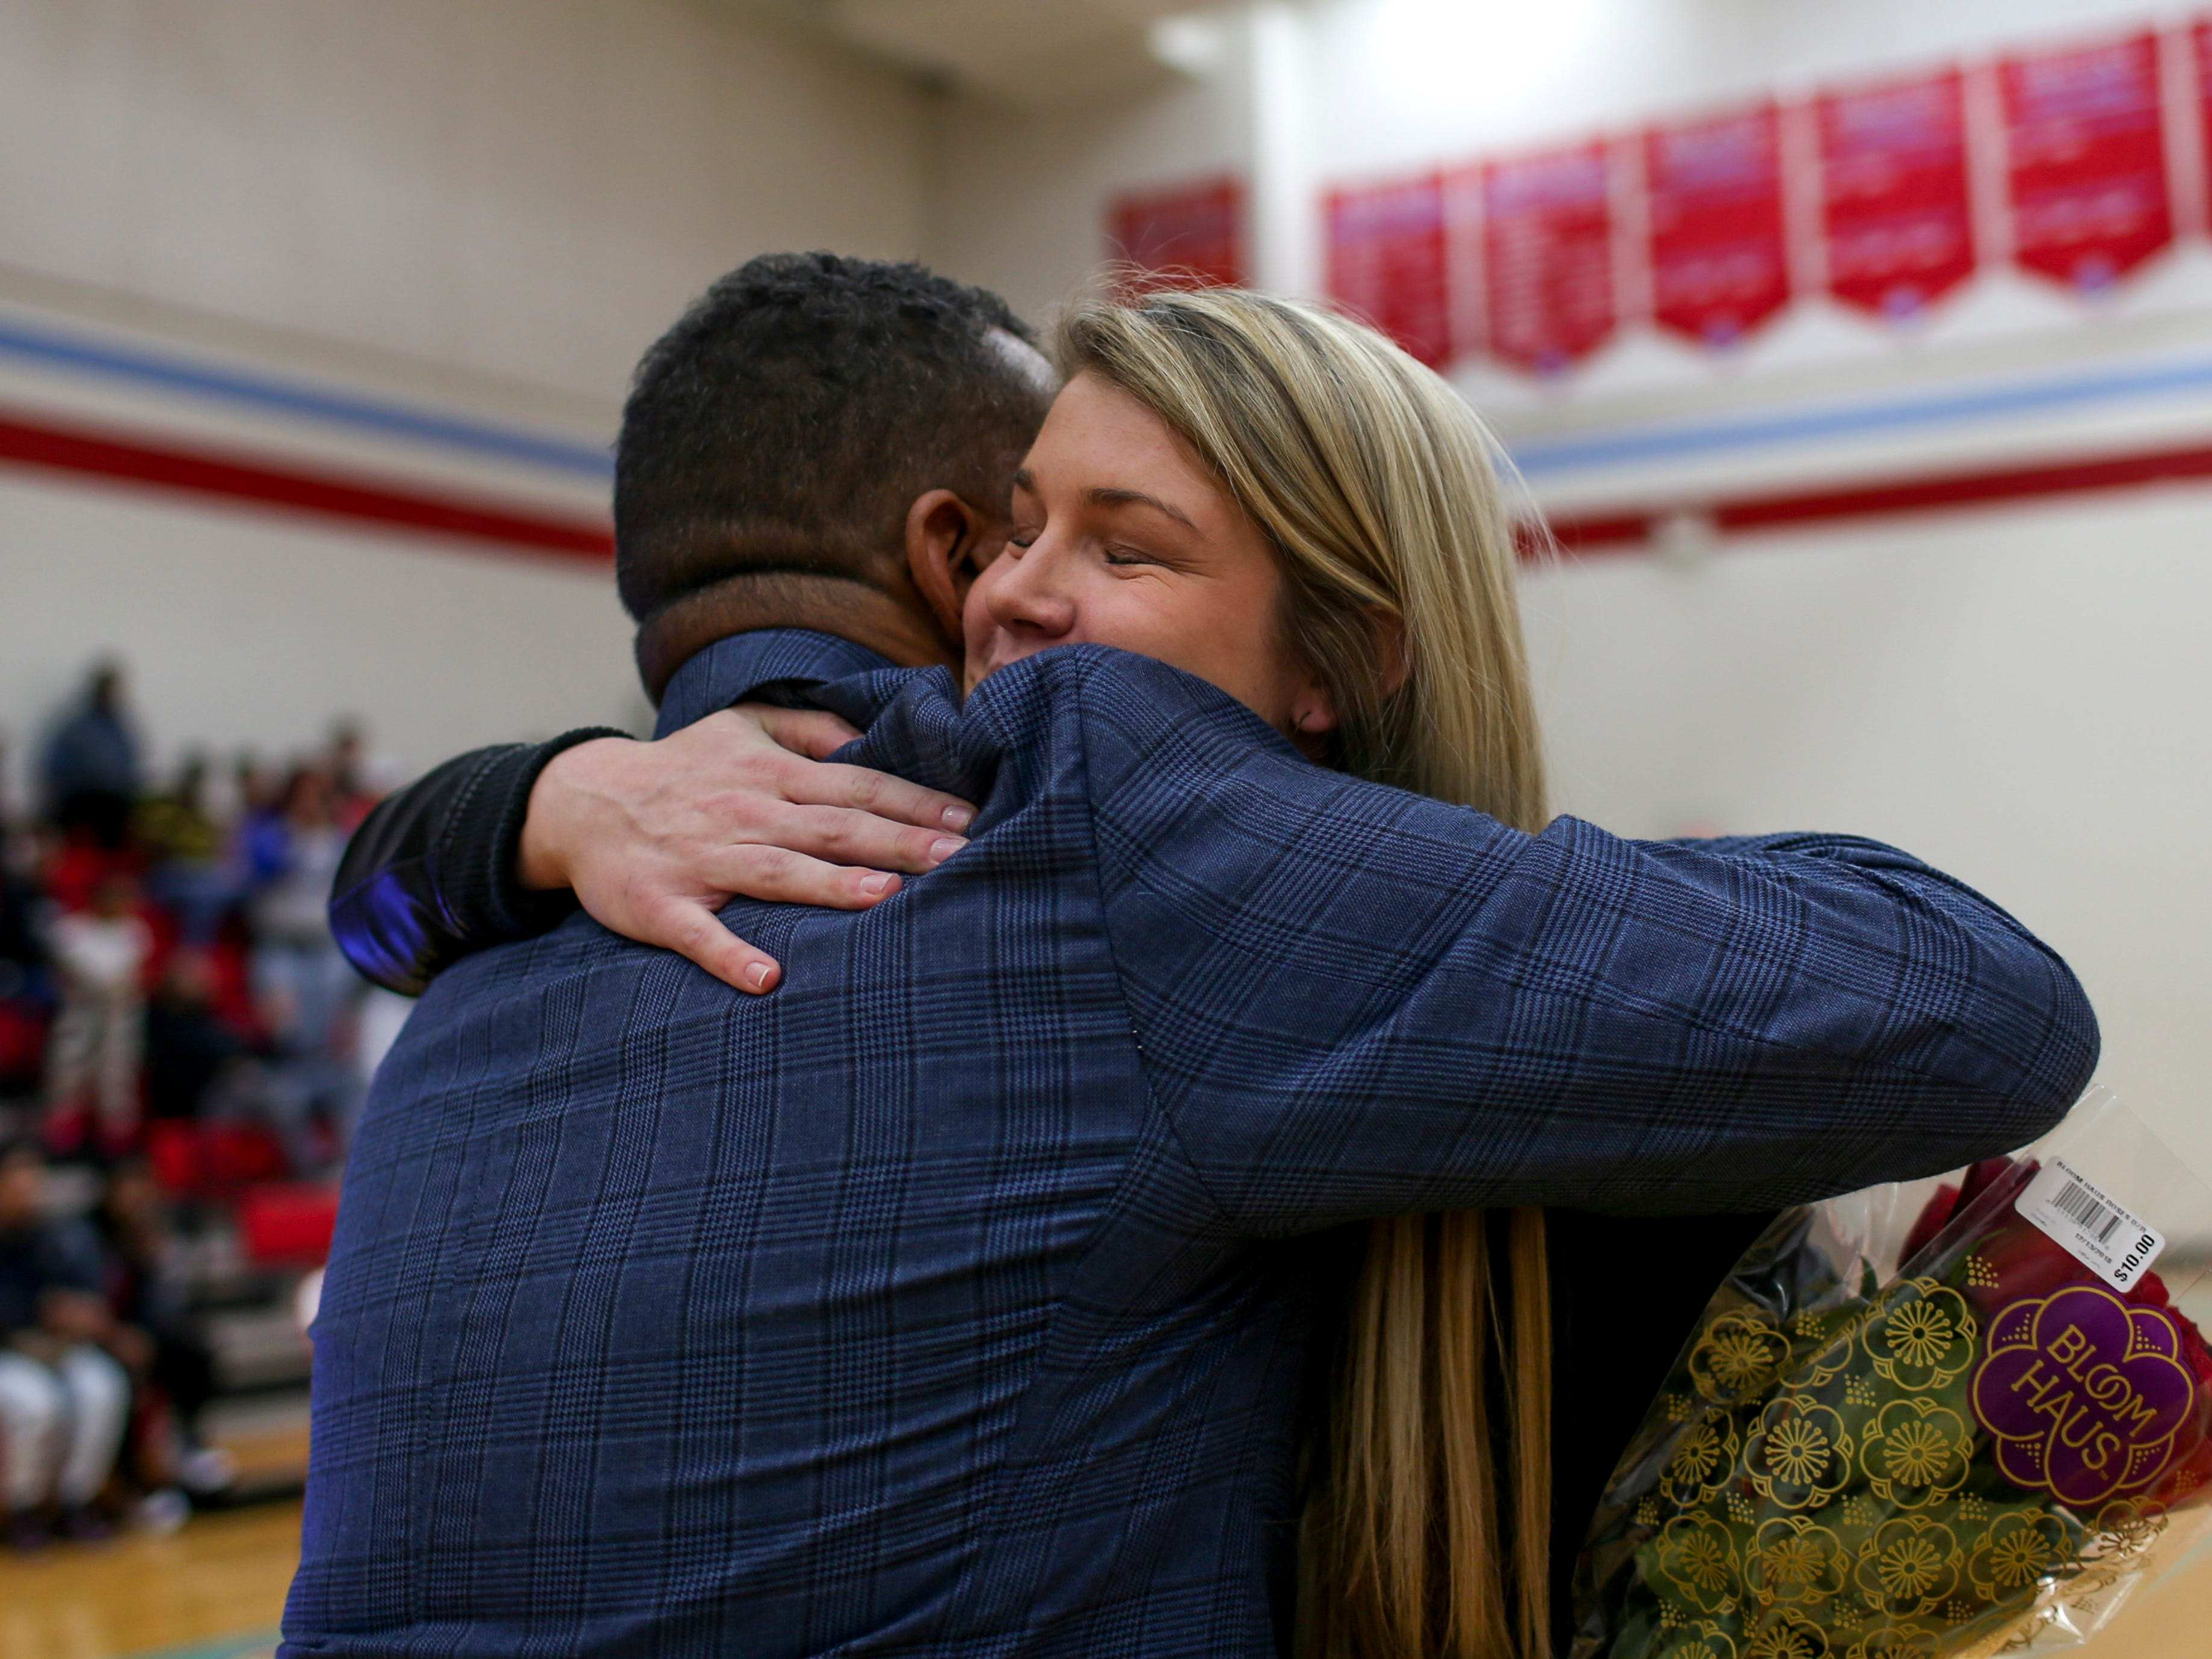 USJ basketball coach Tony Shutes embraces former player Anna Jones during the retirement of her old jersey number 25 at University School of Jackson in Jackson, Tenn., on Friday, Dec. 7, 2018.